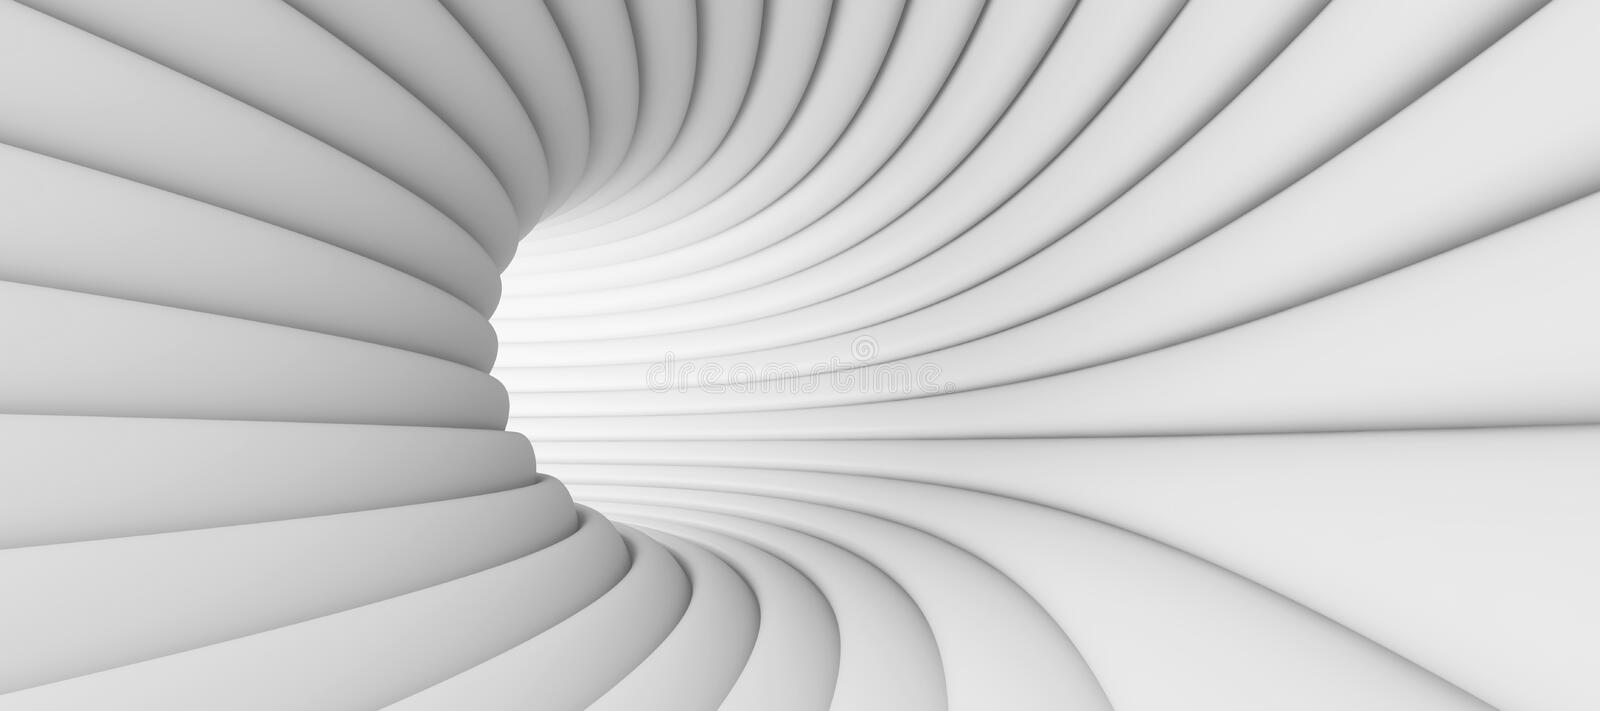 Abstract Tunnel Background royalty free illustration